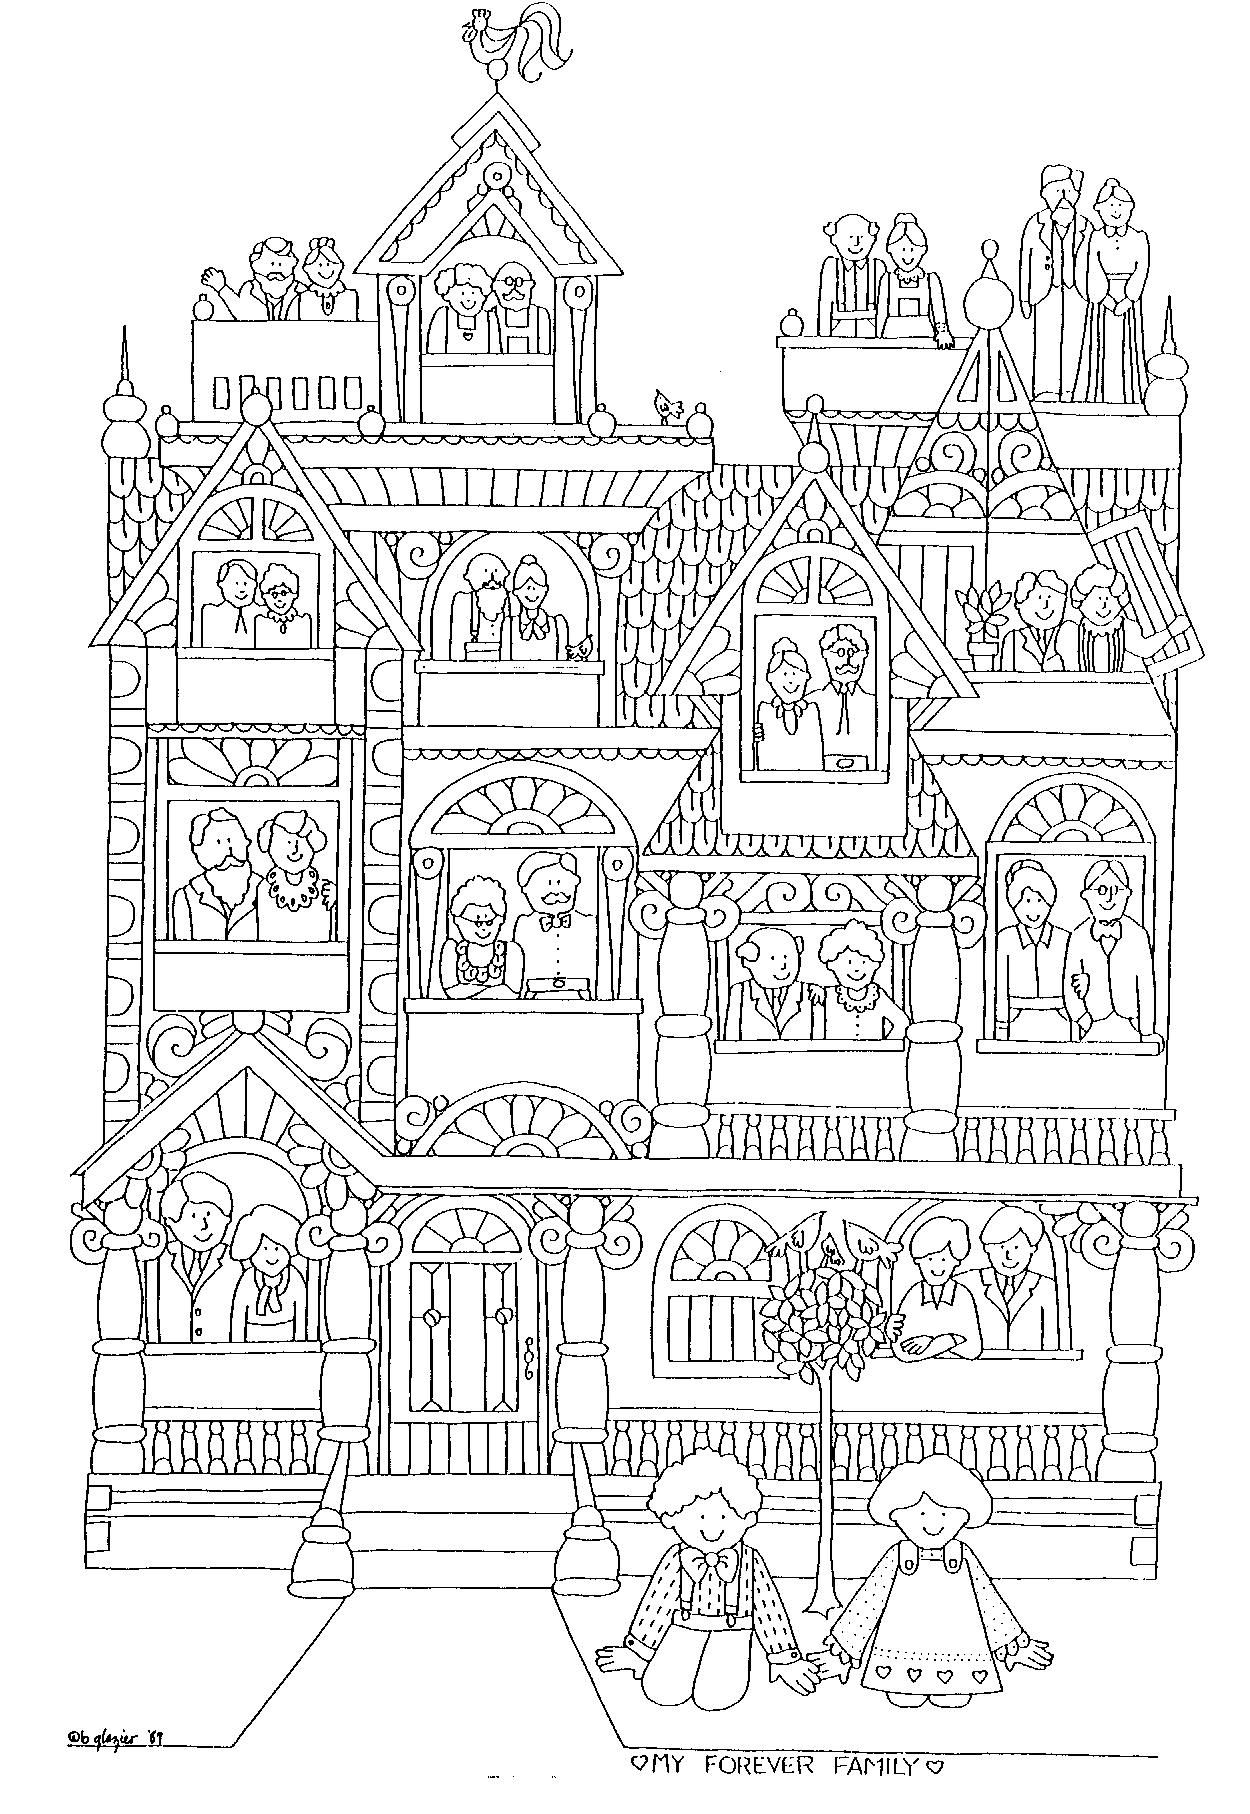 Family Tree Printable And Coloring Page Or Put Actual